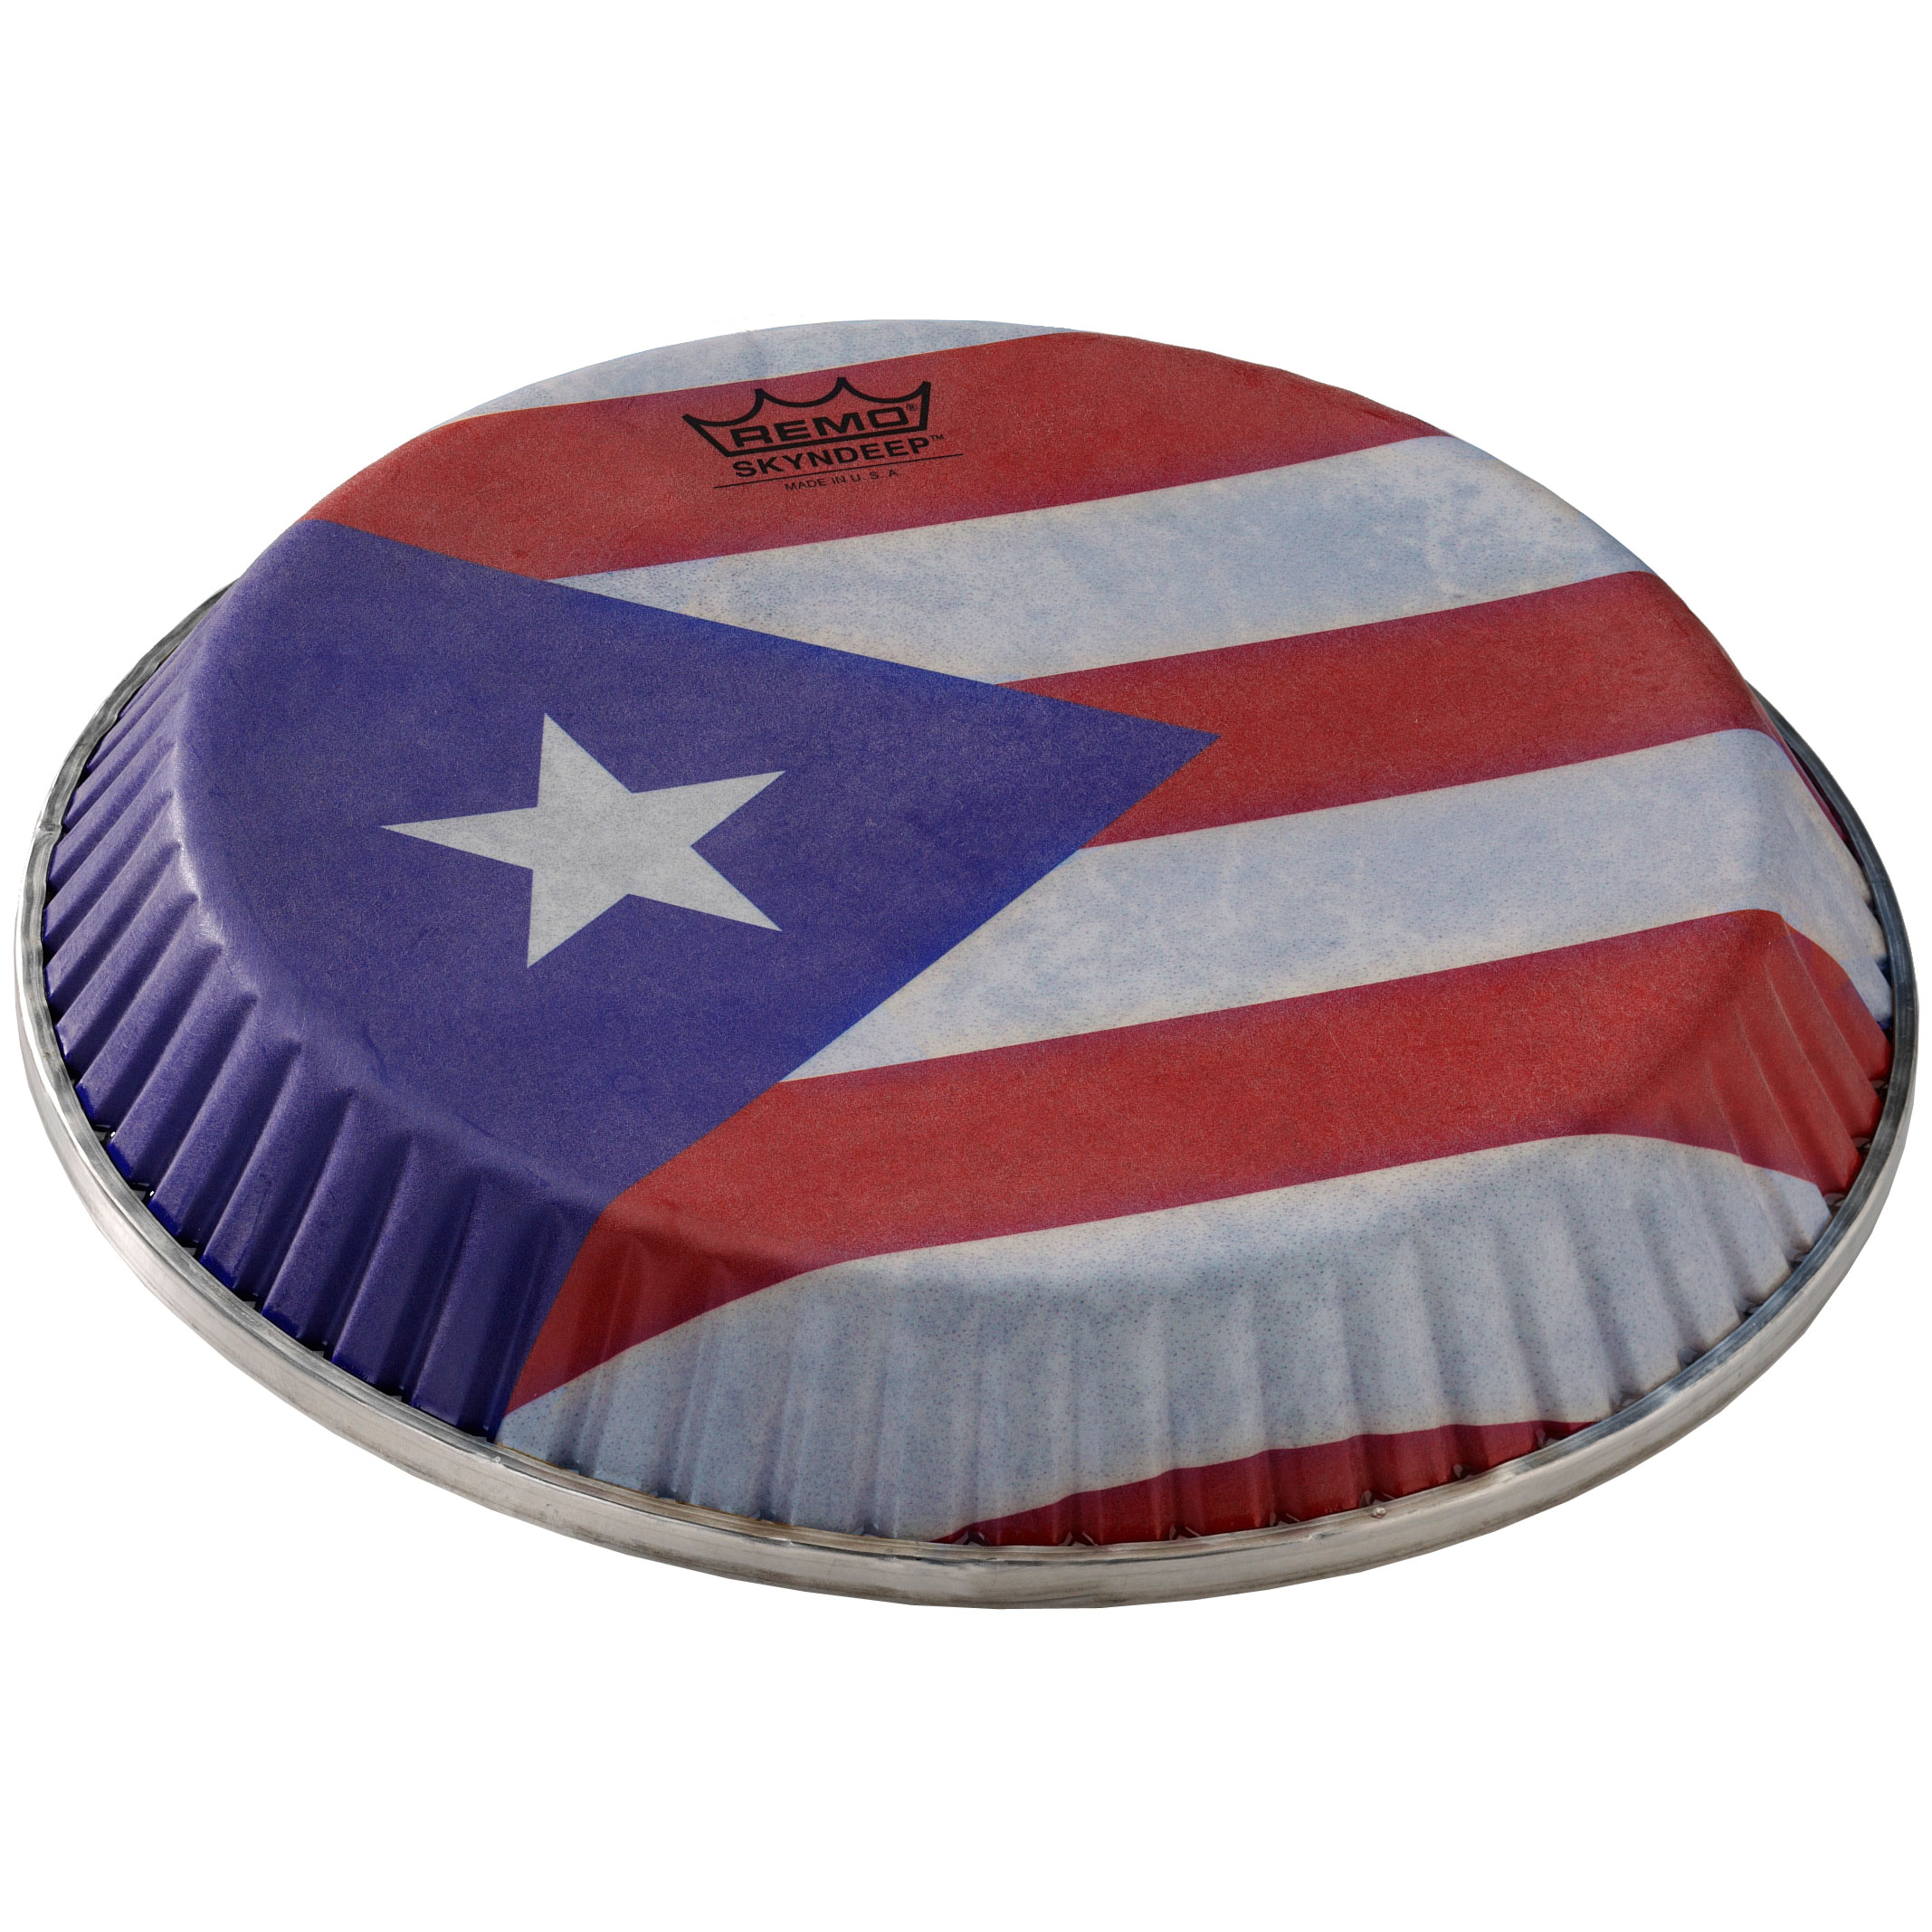 "Remo 13"" Symmetry Skyndeep Conga Drum Head (D1 Collar) with Puerto Rican Flag Graphic"